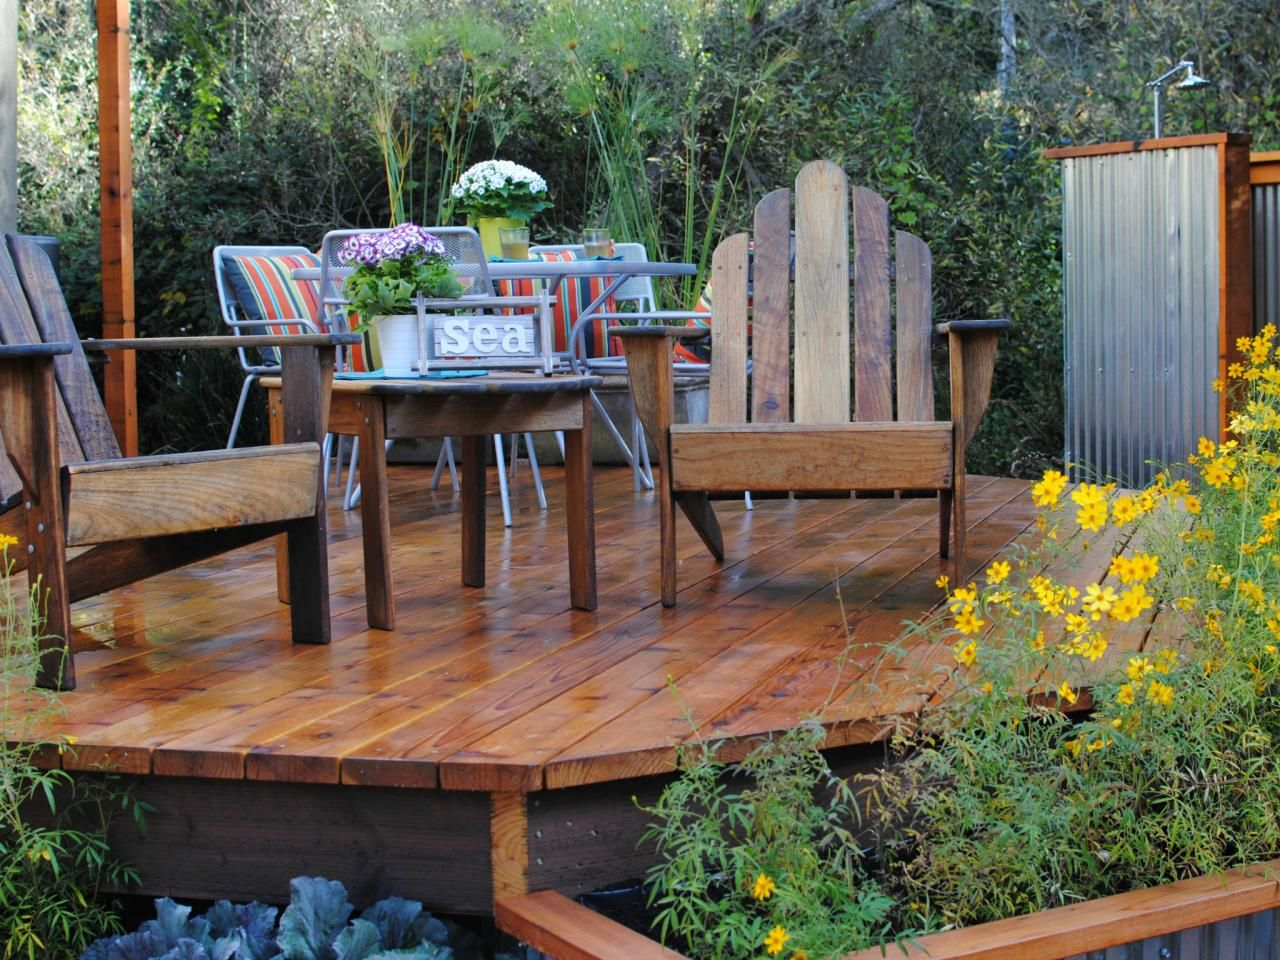 Pictures Of Beautiful Backyard Decks Patios And Fire Pits Diy Deck Building Patio Design Ideas Diy Patio Pictures Backyard Patio Design